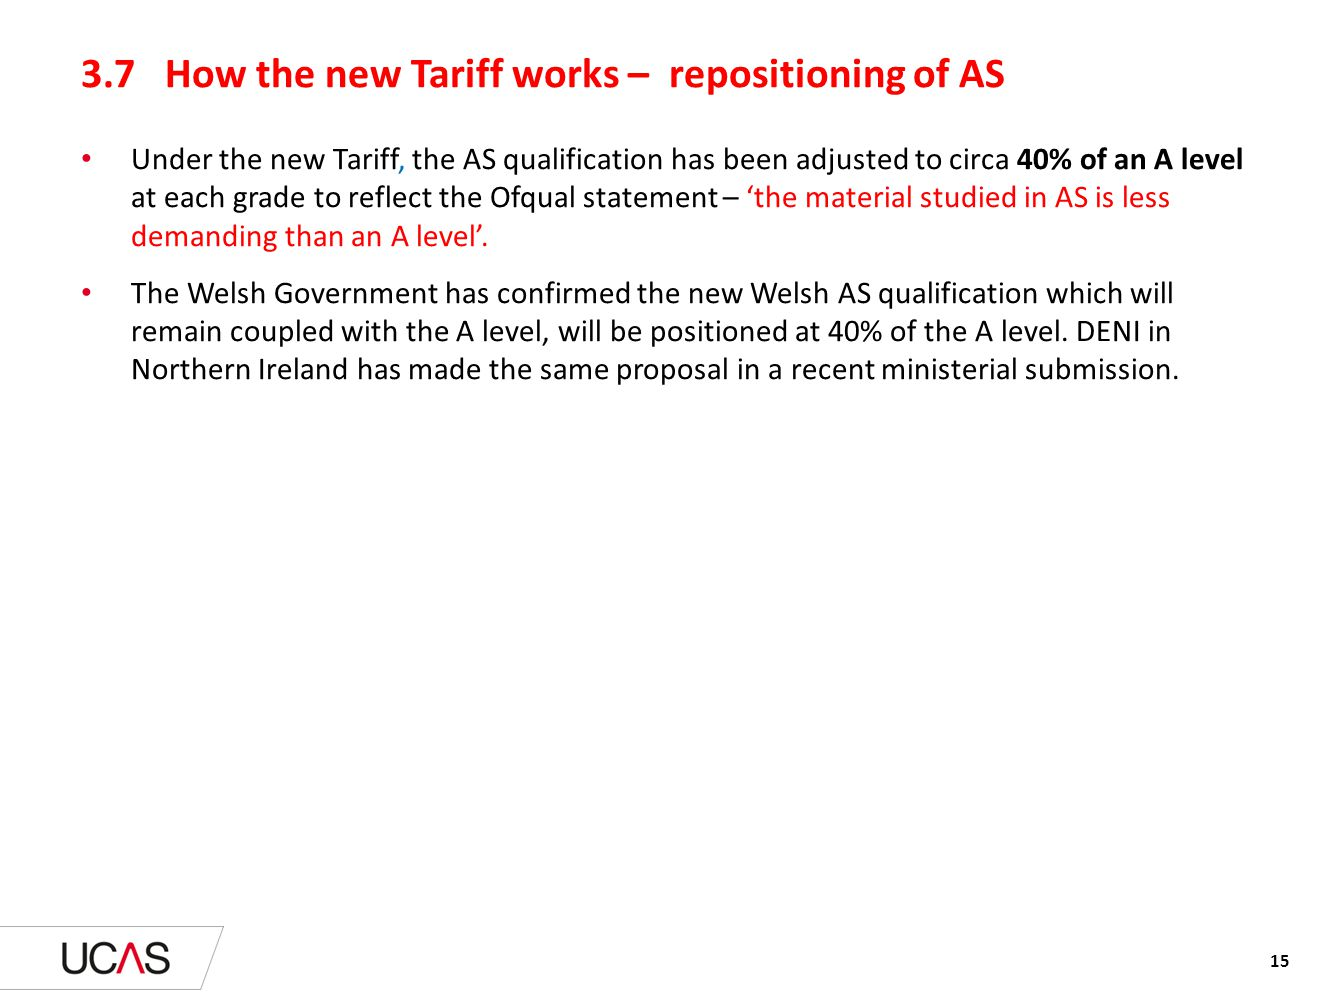 3.7 How the new Tariff works – repositioning of AS